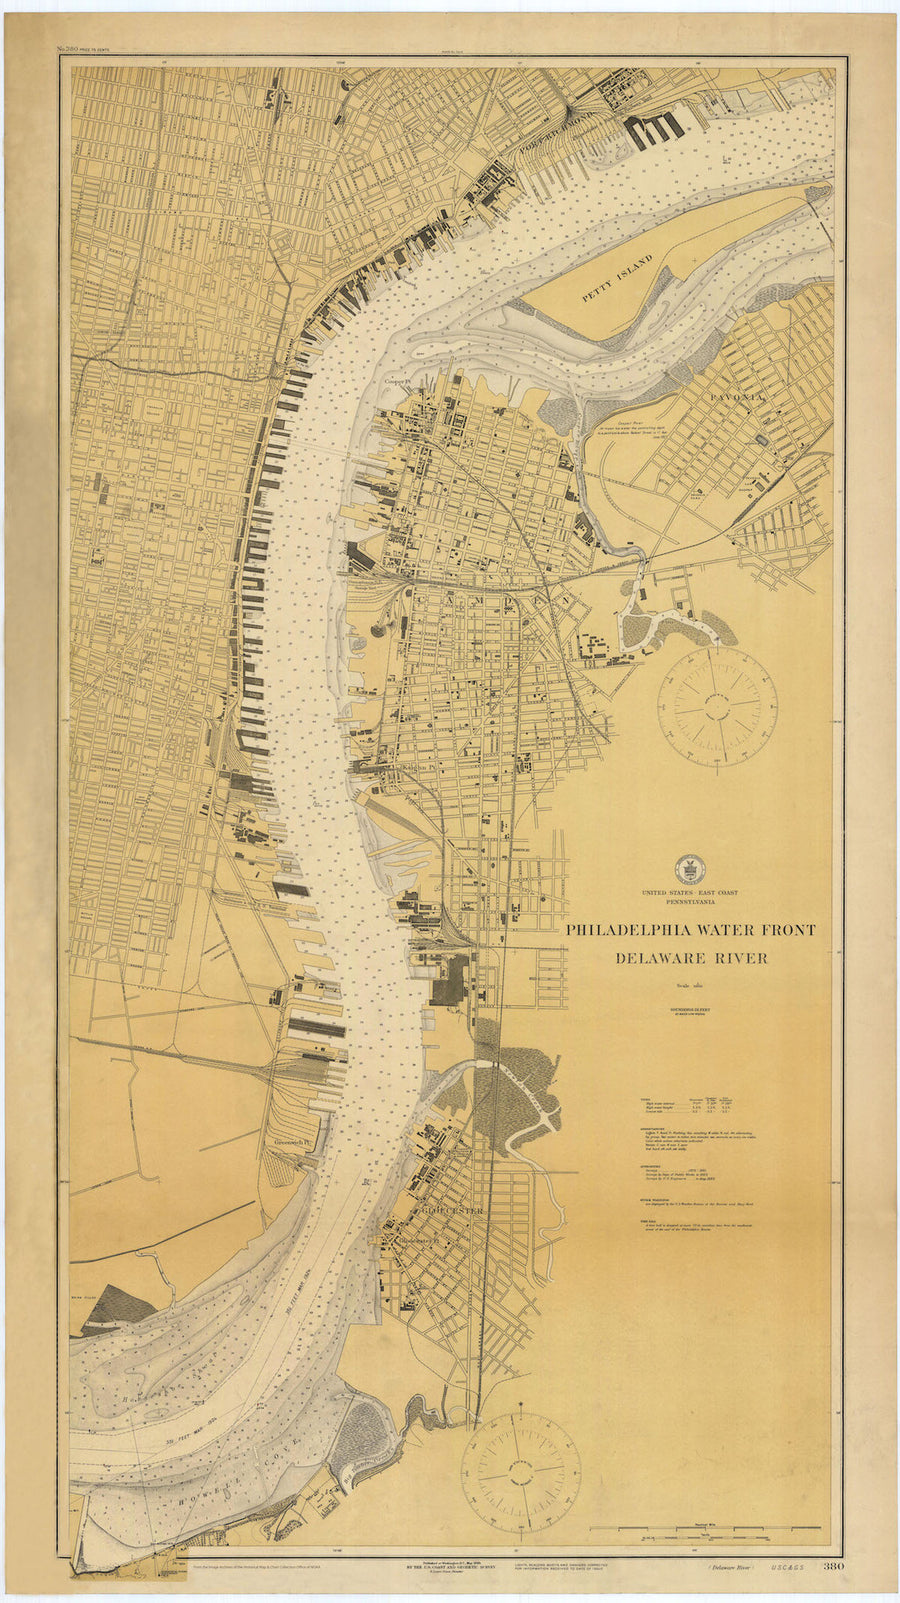 Philadelphia Waterfront and Delaware River Map 1924